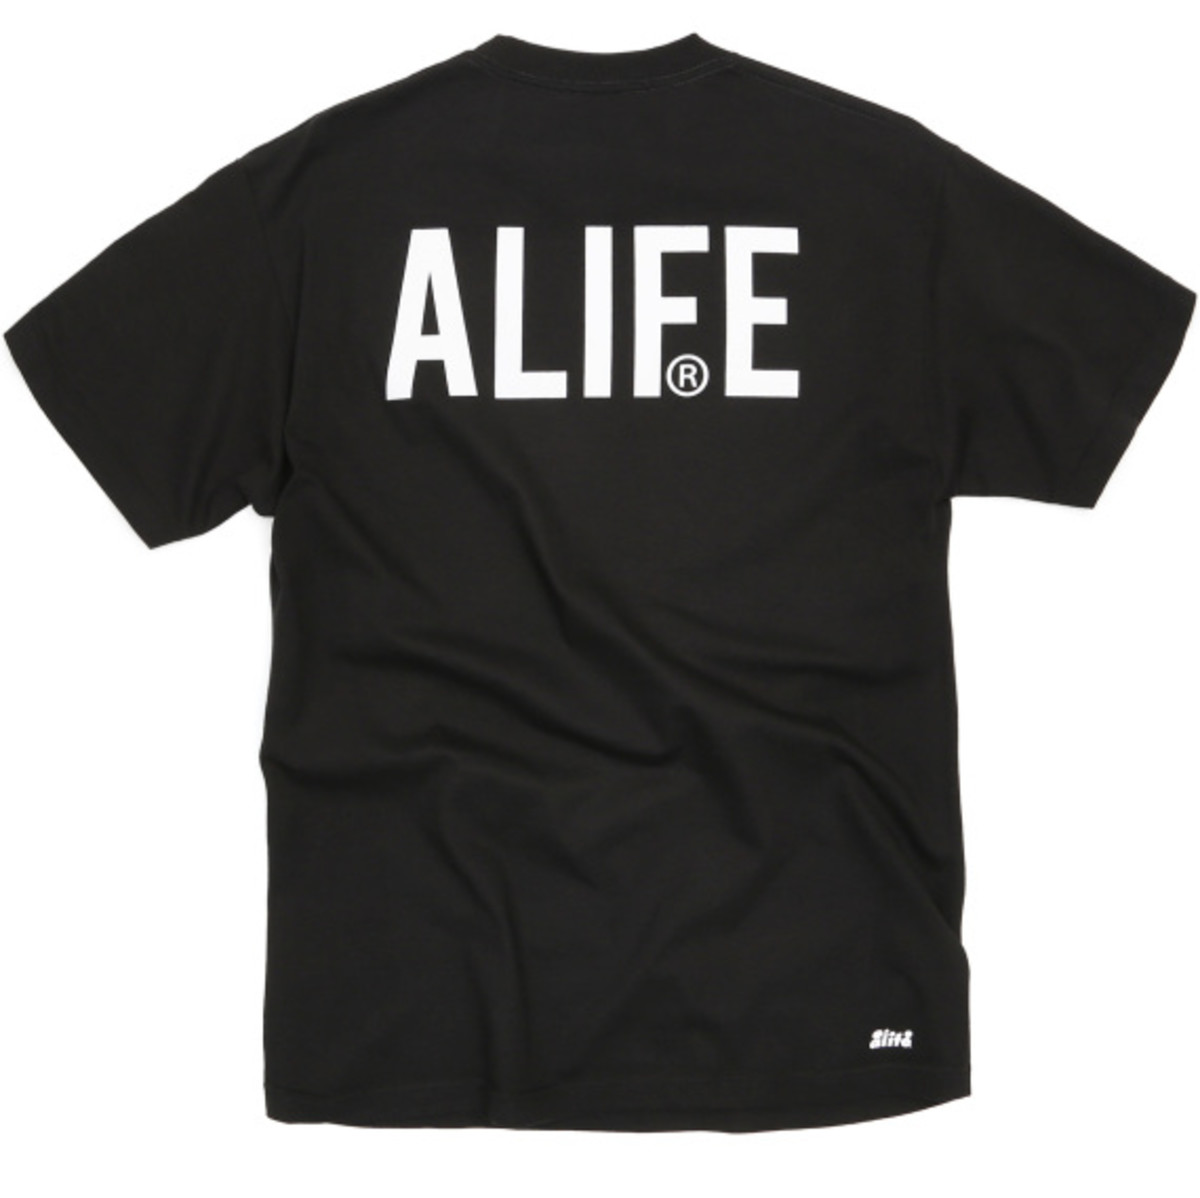 ALIFE - Holiday 2014 Collection Lookbook - 46